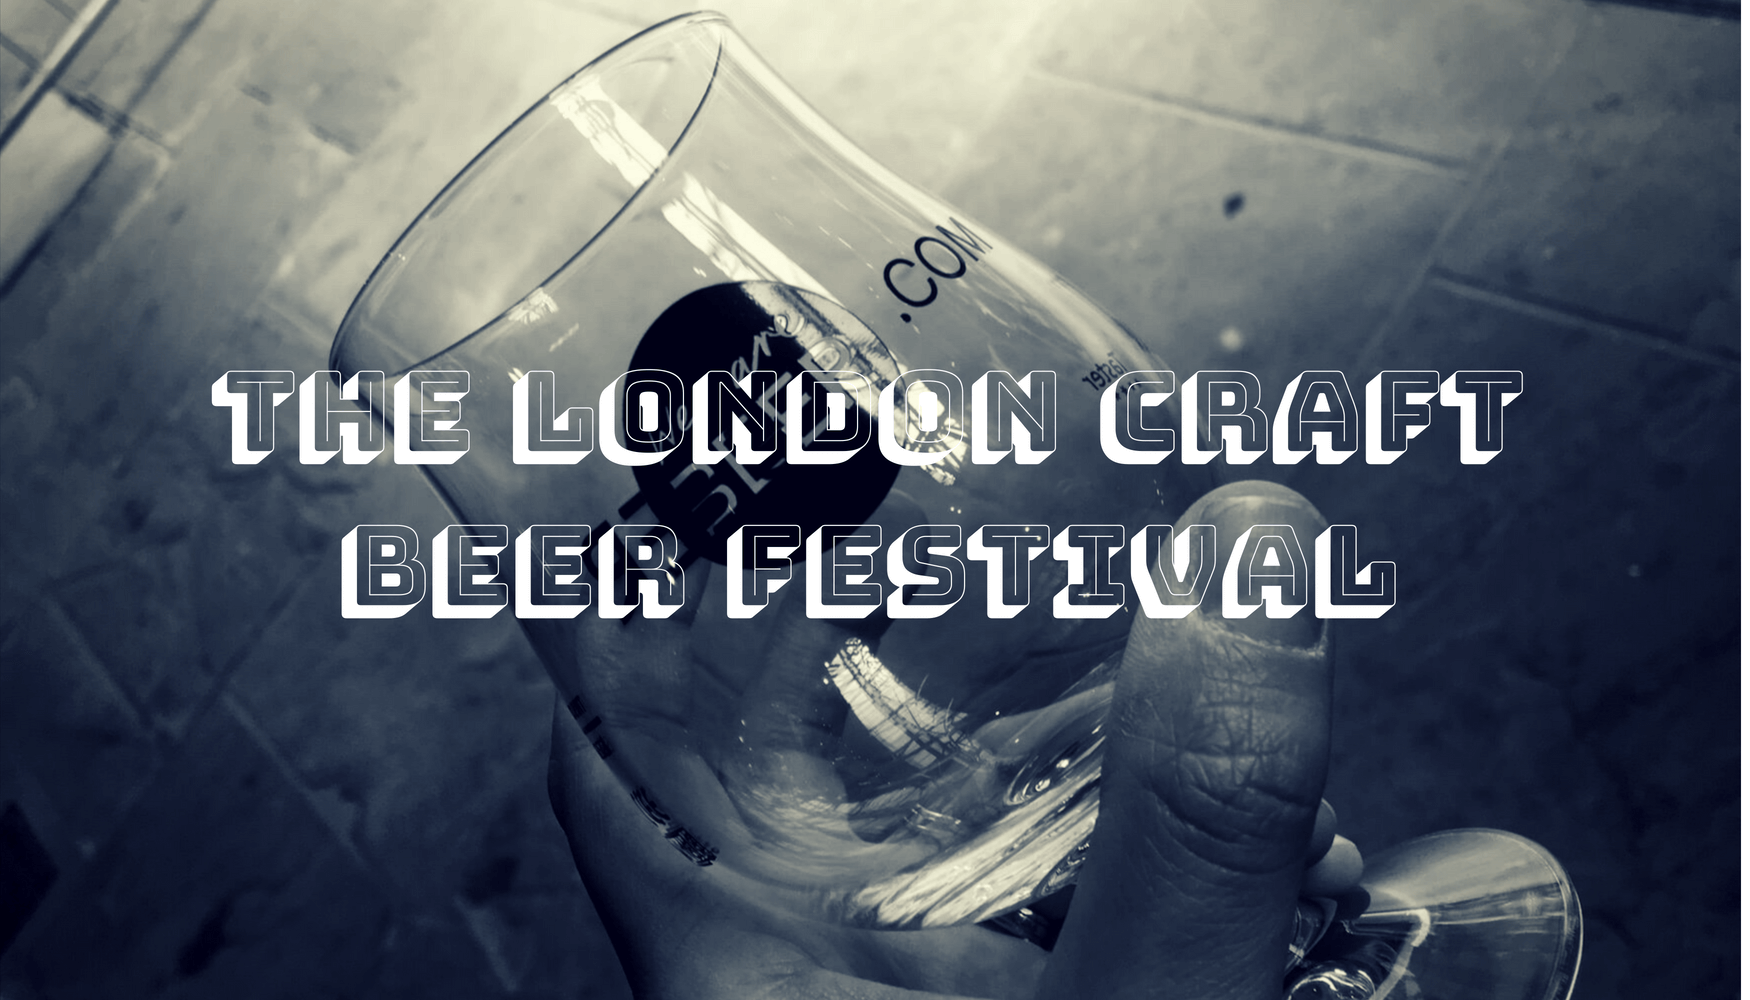 The London Craft Beer Festival 2018